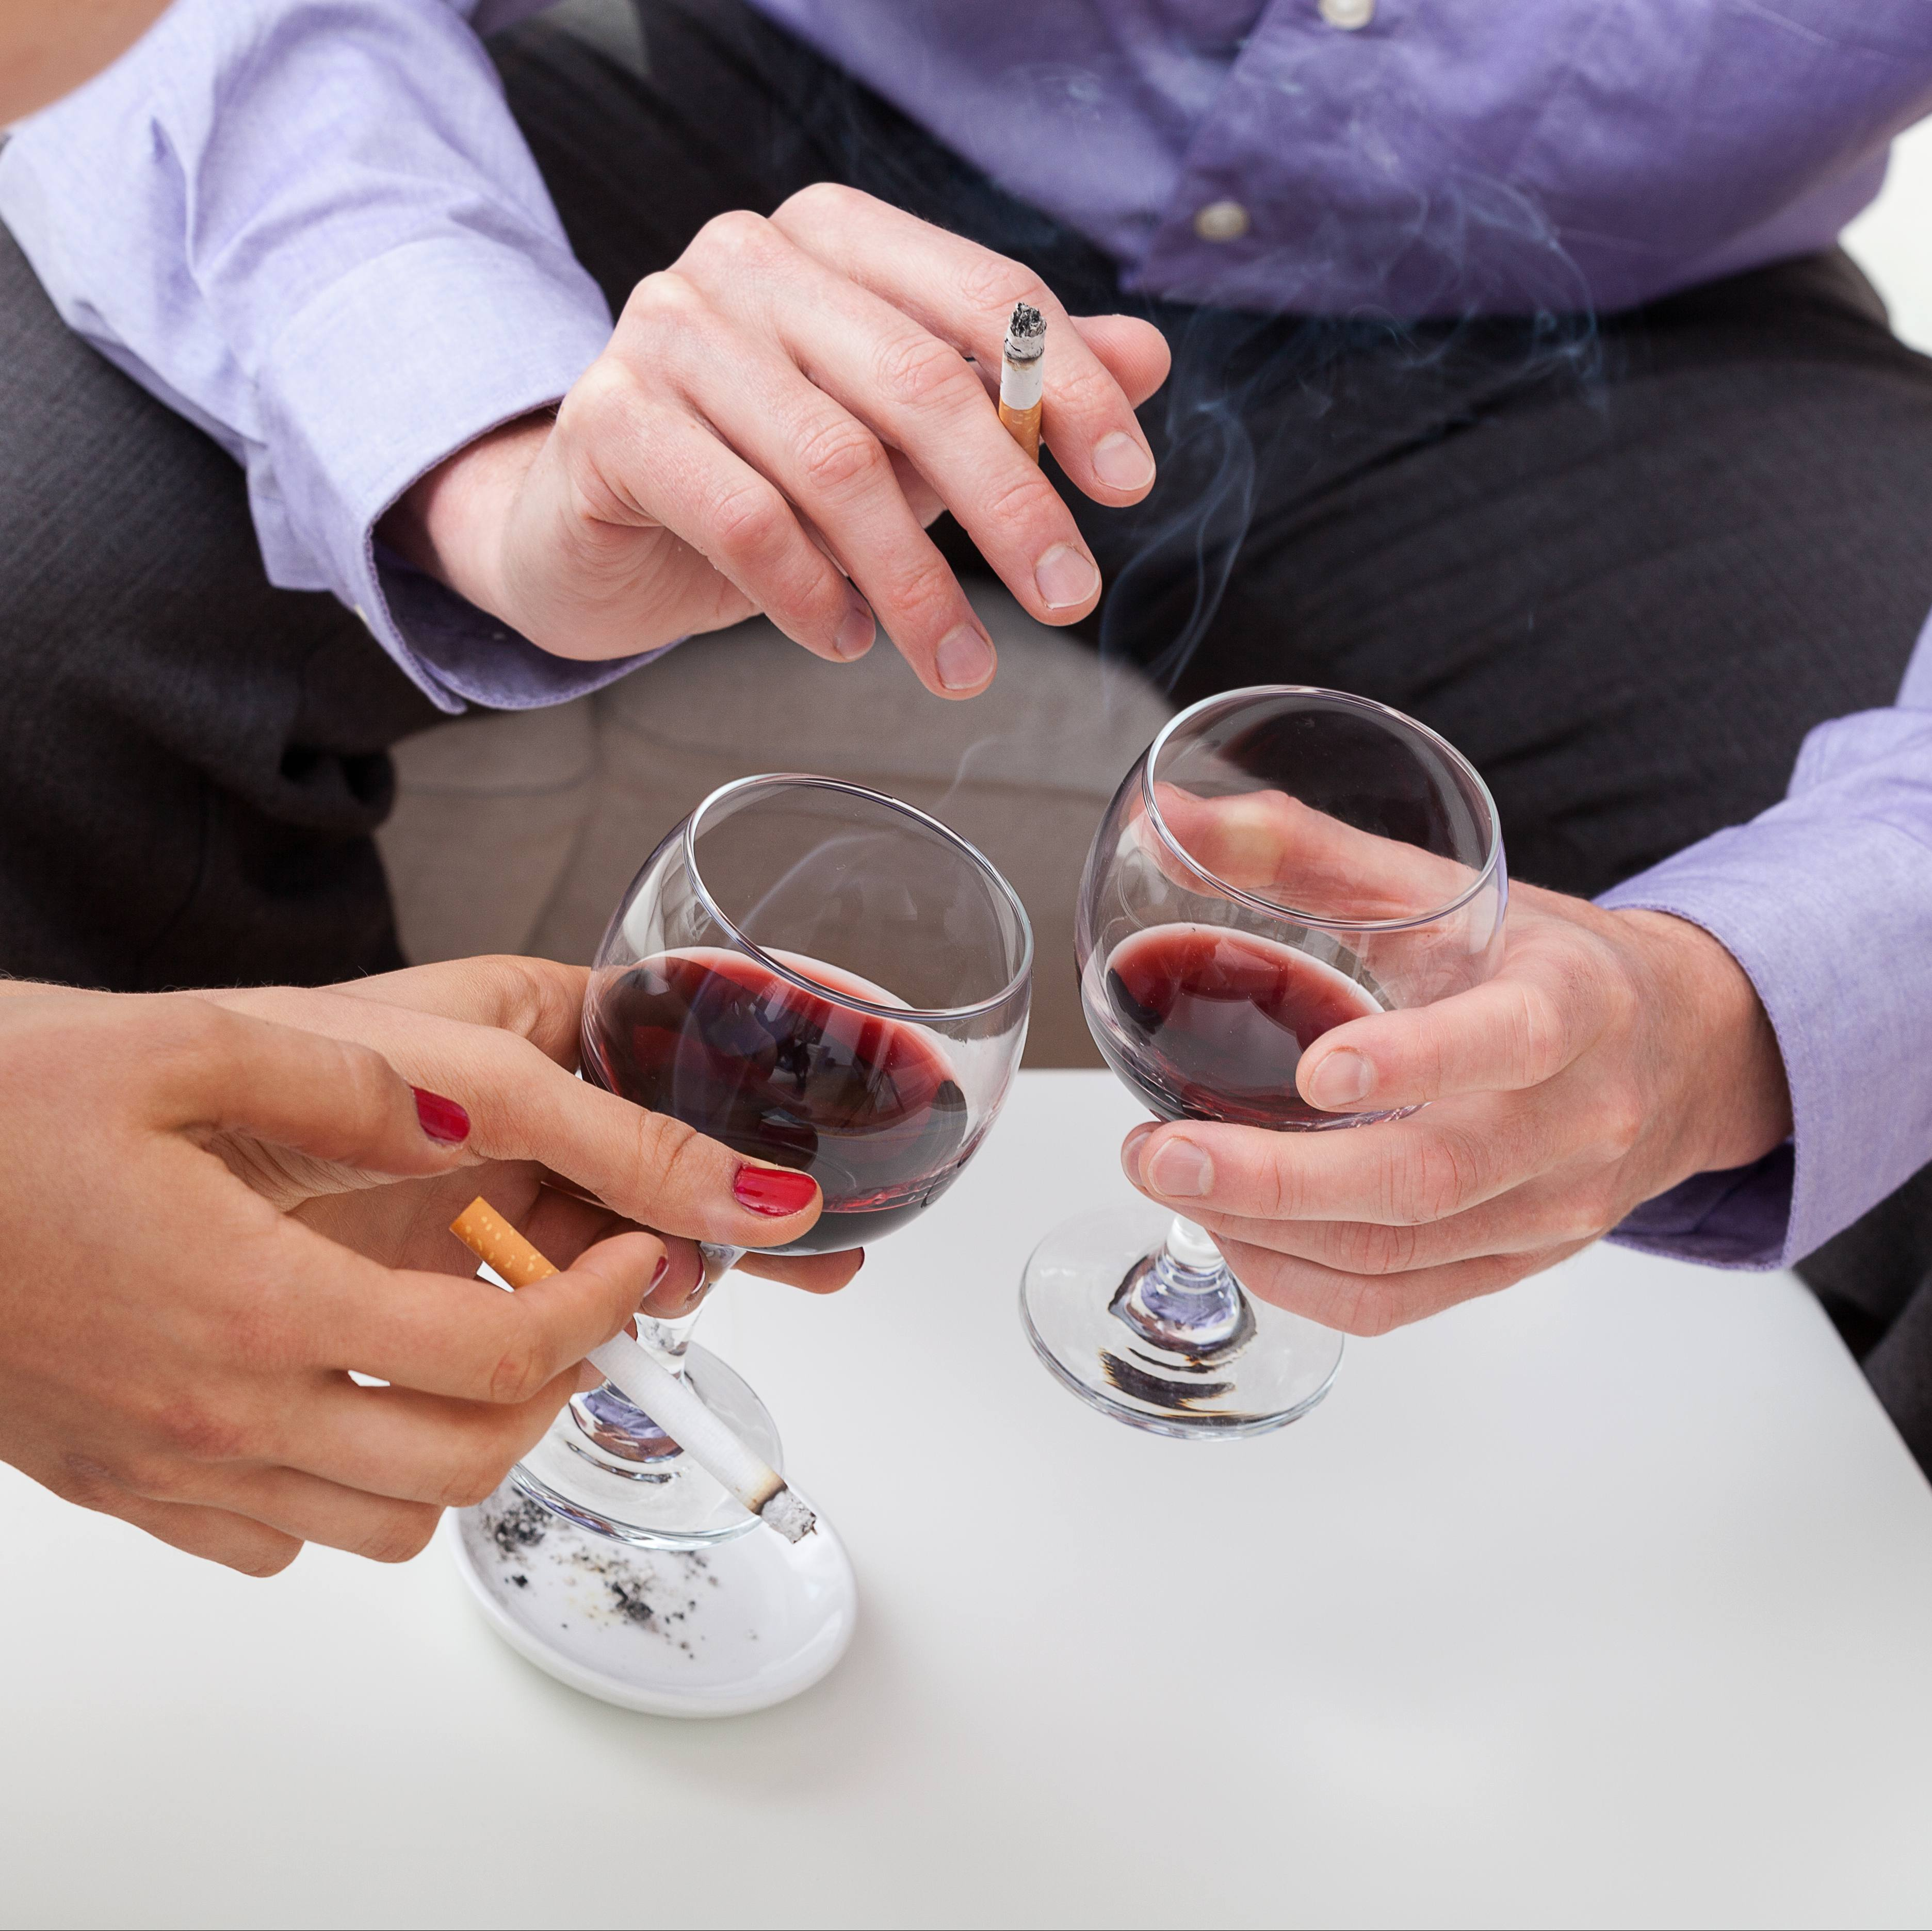 close up of the hands of two white people holding glasses of wine alcohol and tobacco cigarettes with smoke in the air